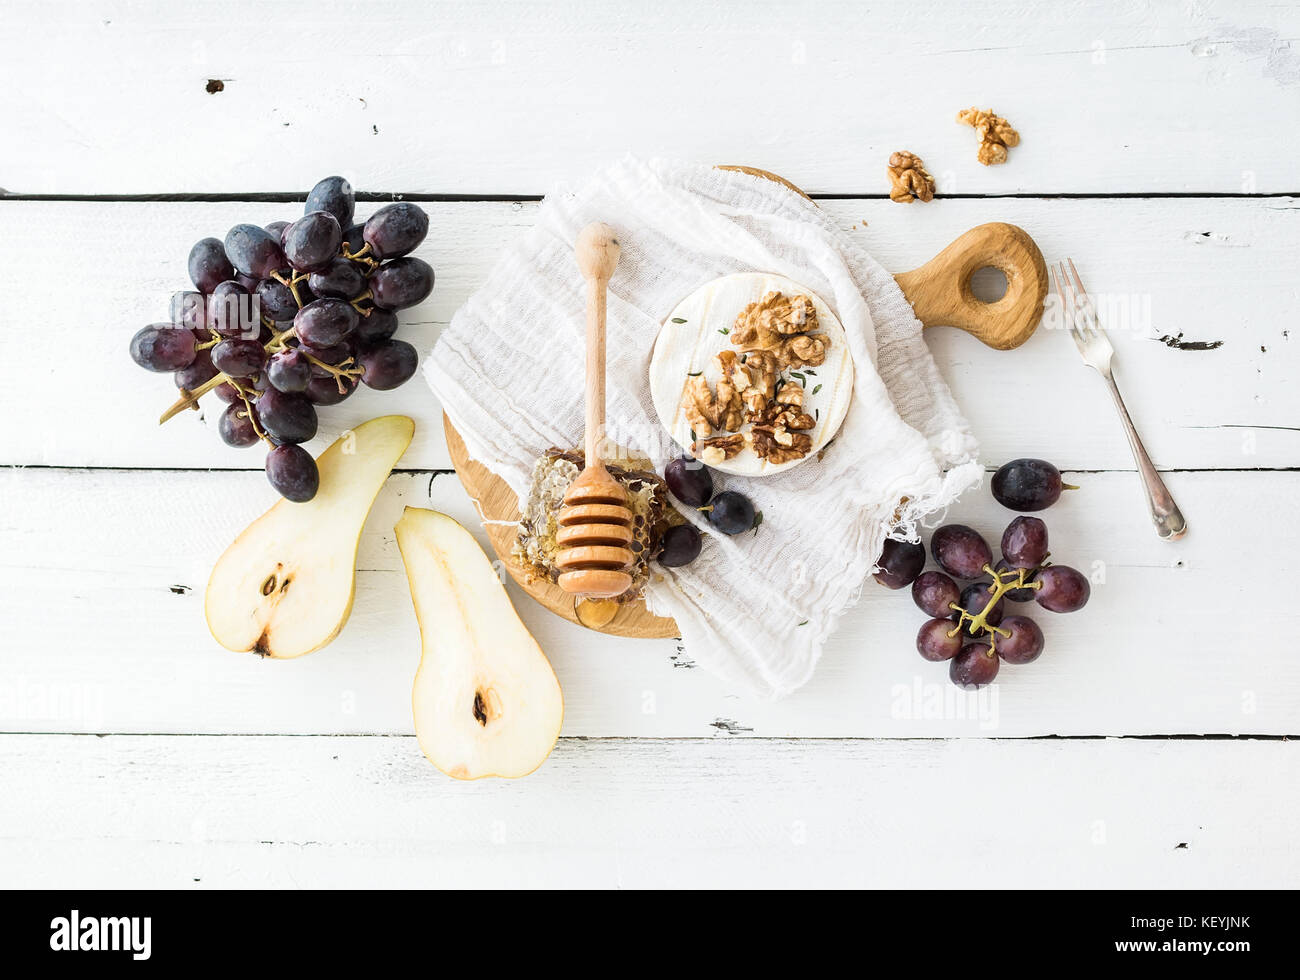 Camembert cheese with grape, walnuts, pear and honey on vintage metal plate - Stock Image